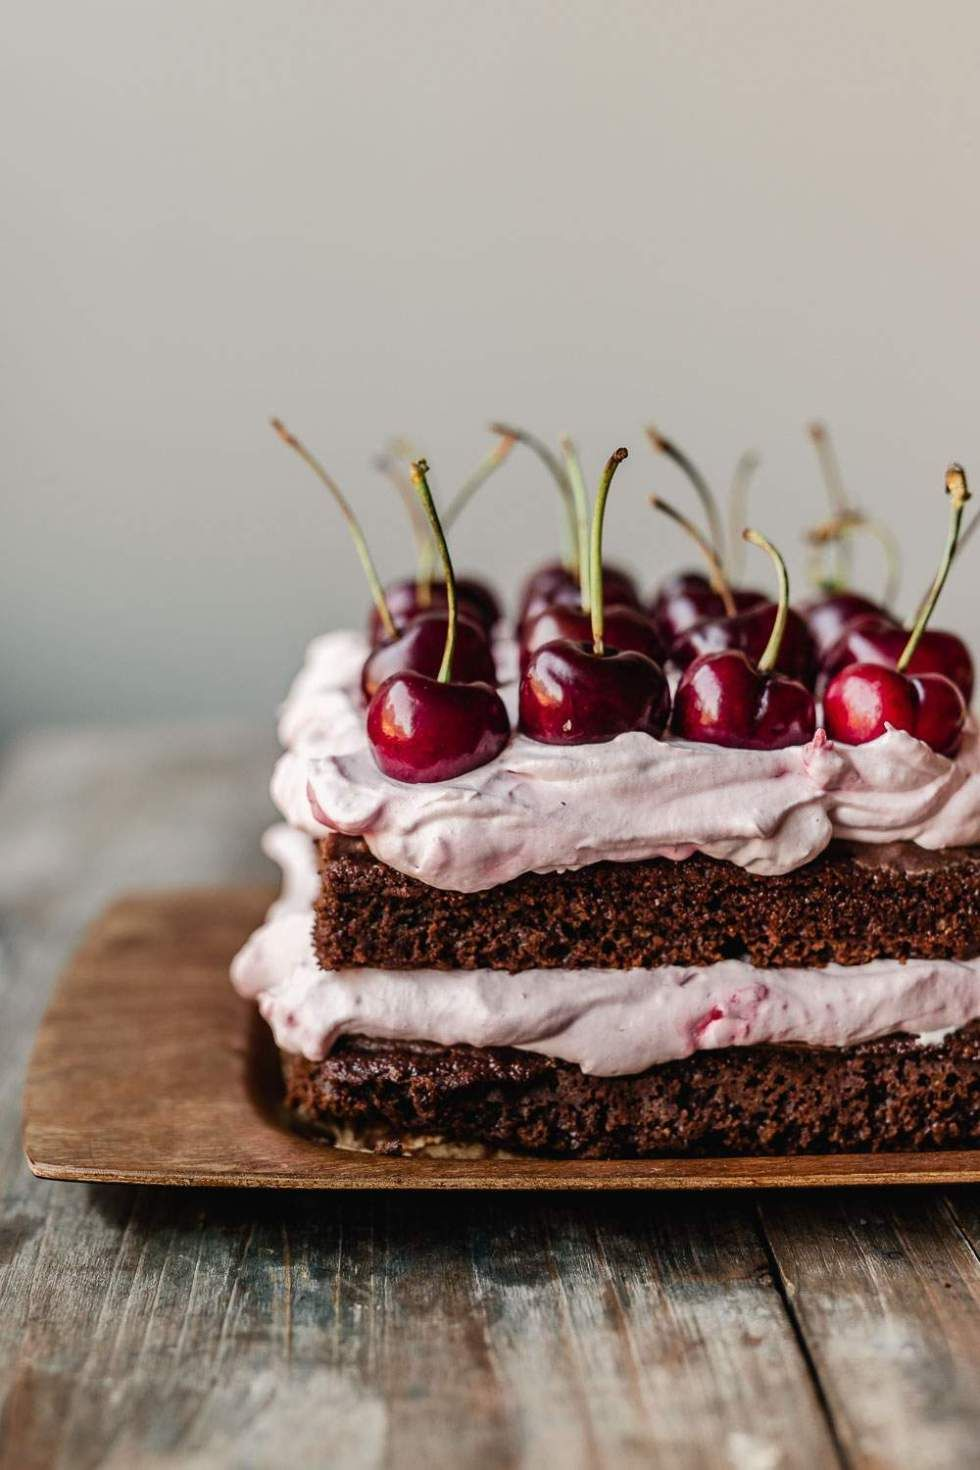 VEGAN BLACK FOREST CHERRY CREAM CAKE – My Berry Forest